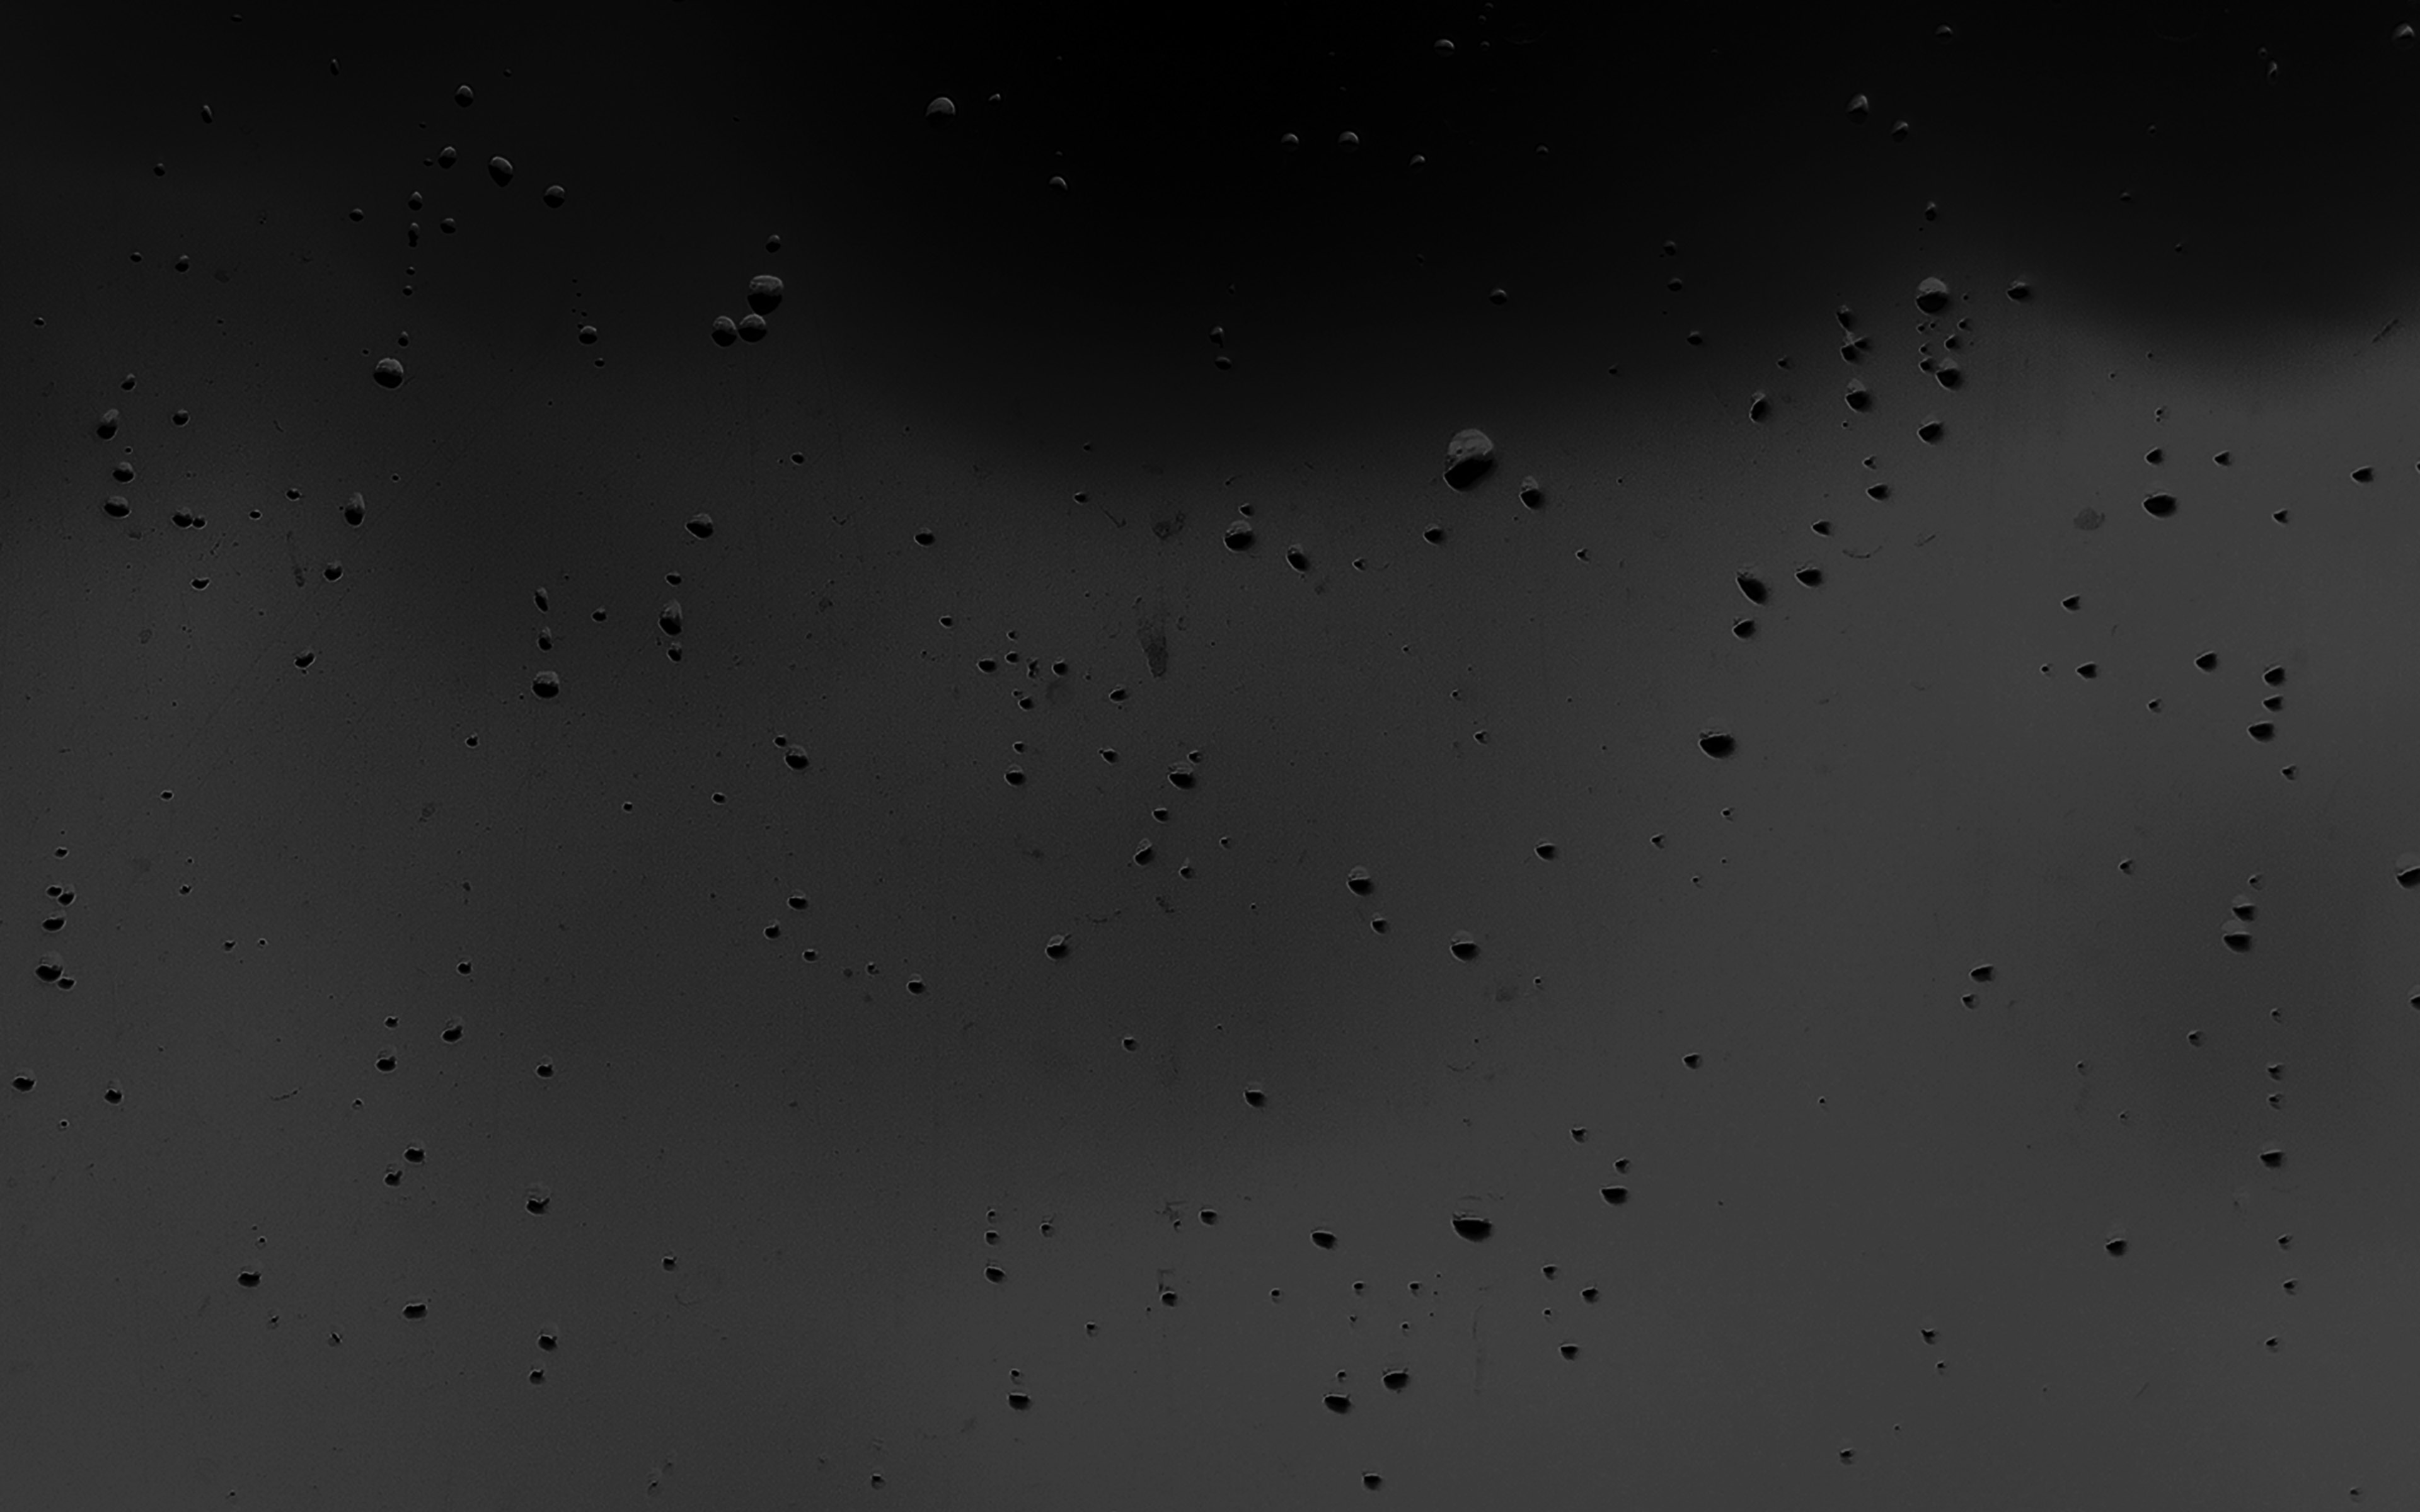 Classic Car 4k Wallpapers Mf10 Rain By Zomx Dark Drops Window Papers Co